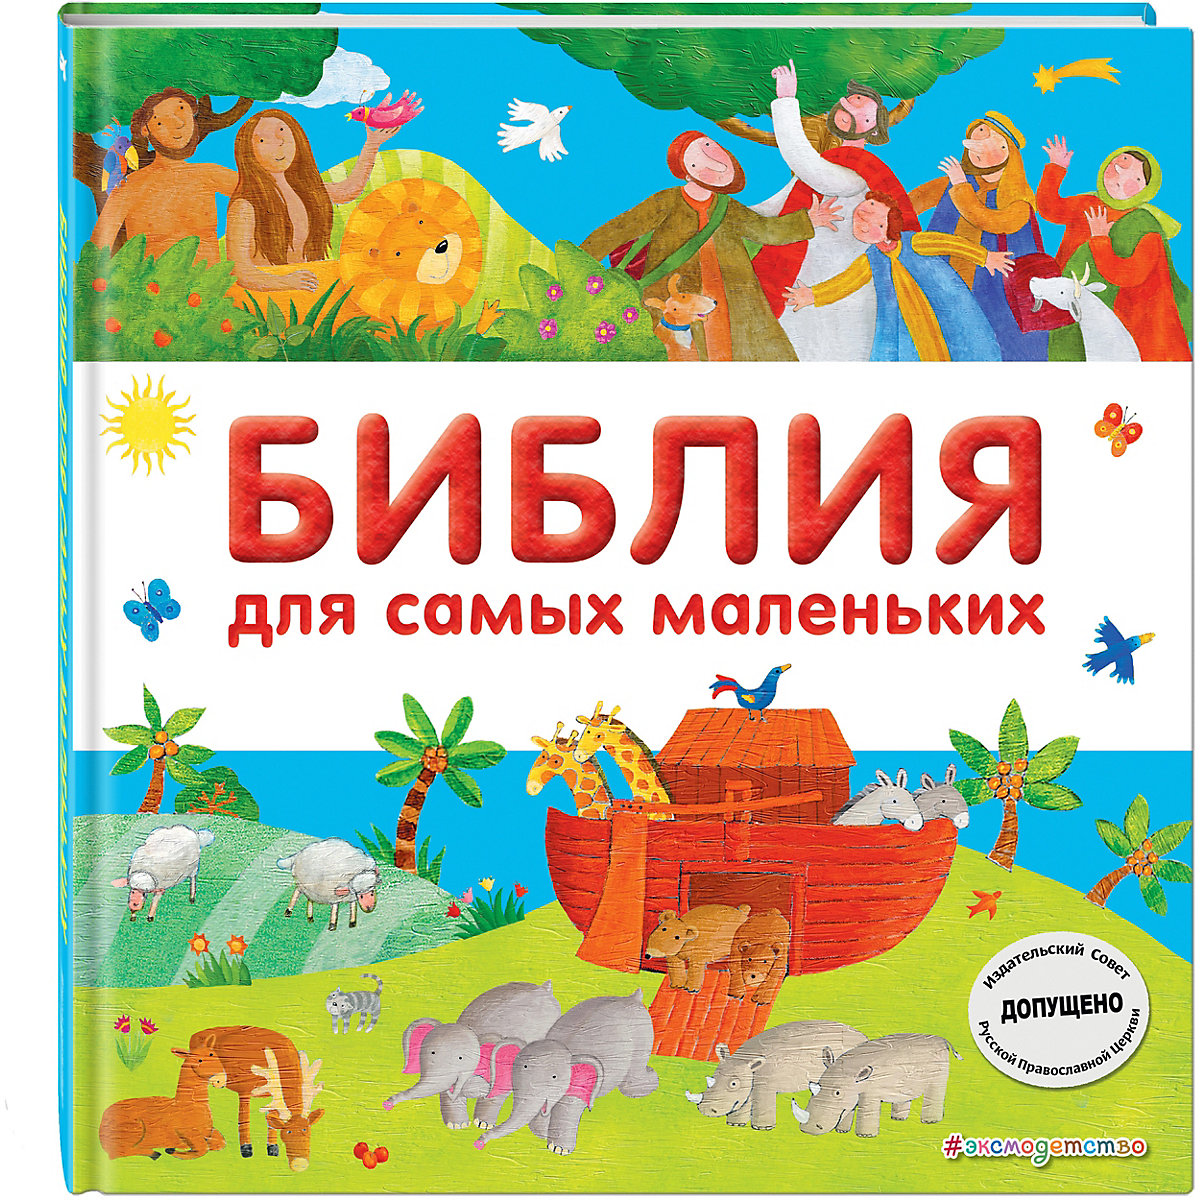 Books EKSMO 9556093 Children Education Encyclopedia Alphabet Dictionary Book For Baby MTpromo